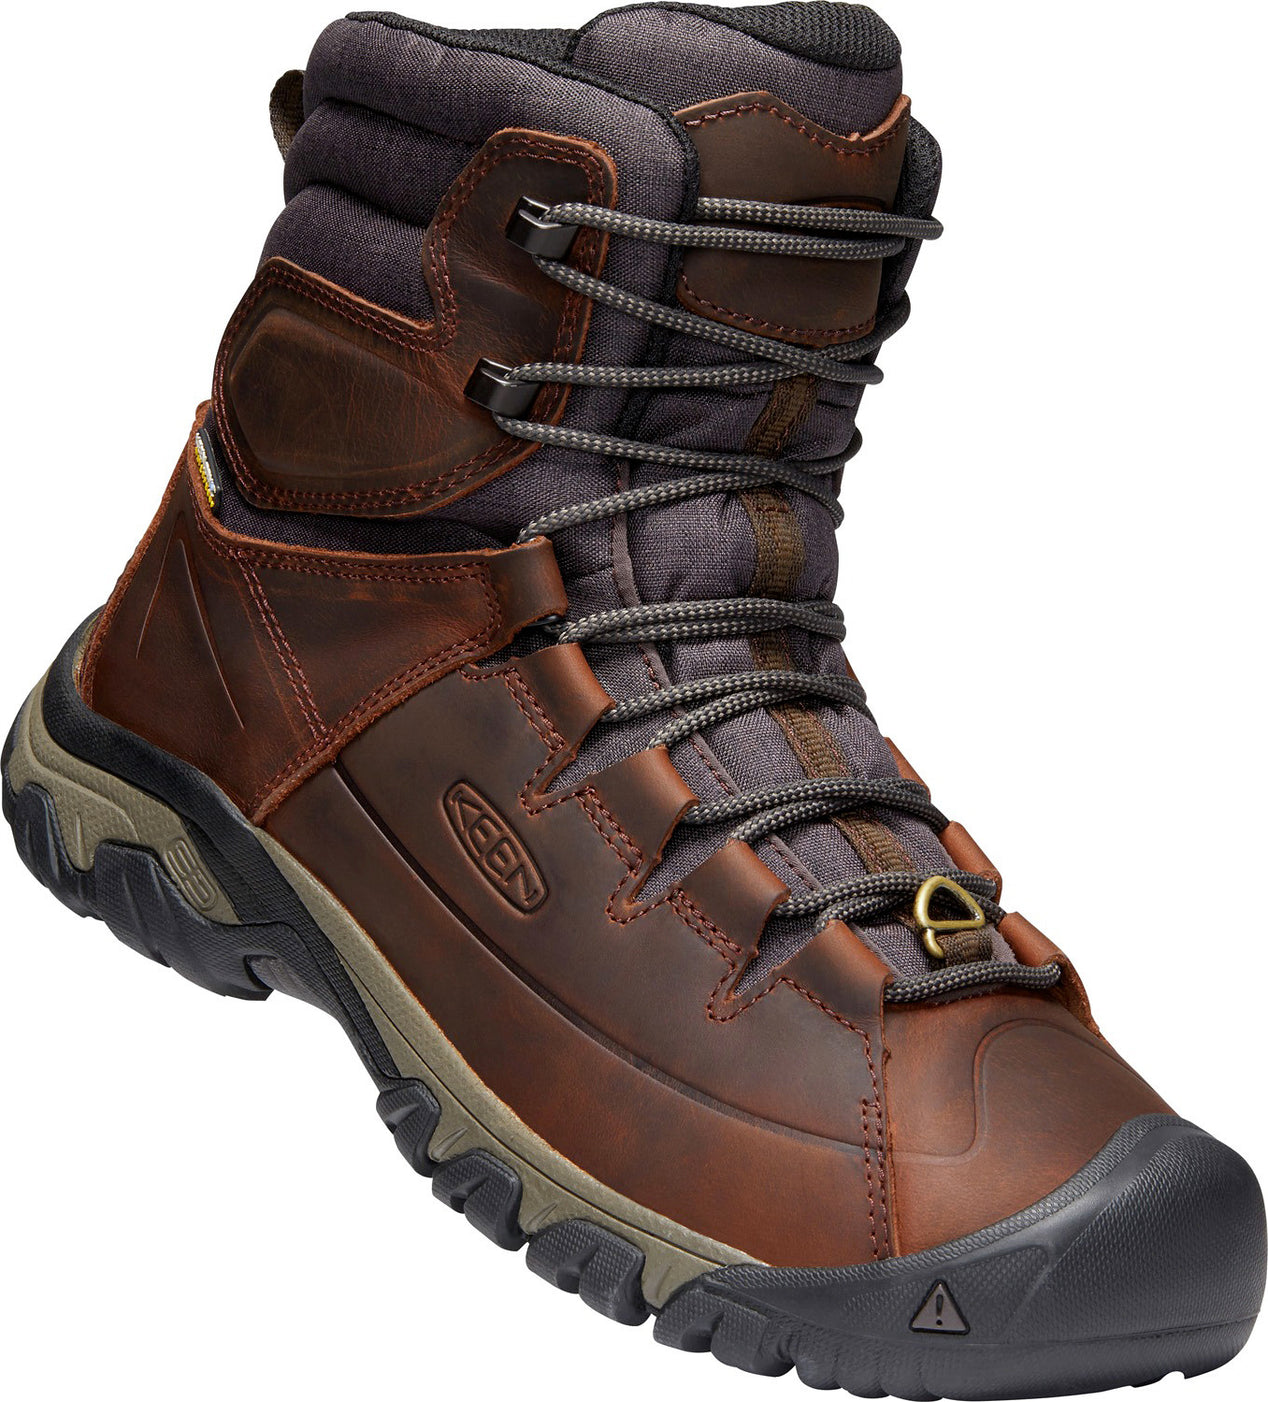 cbcaa632f72 Keen Men's Targhee Lace Boots High